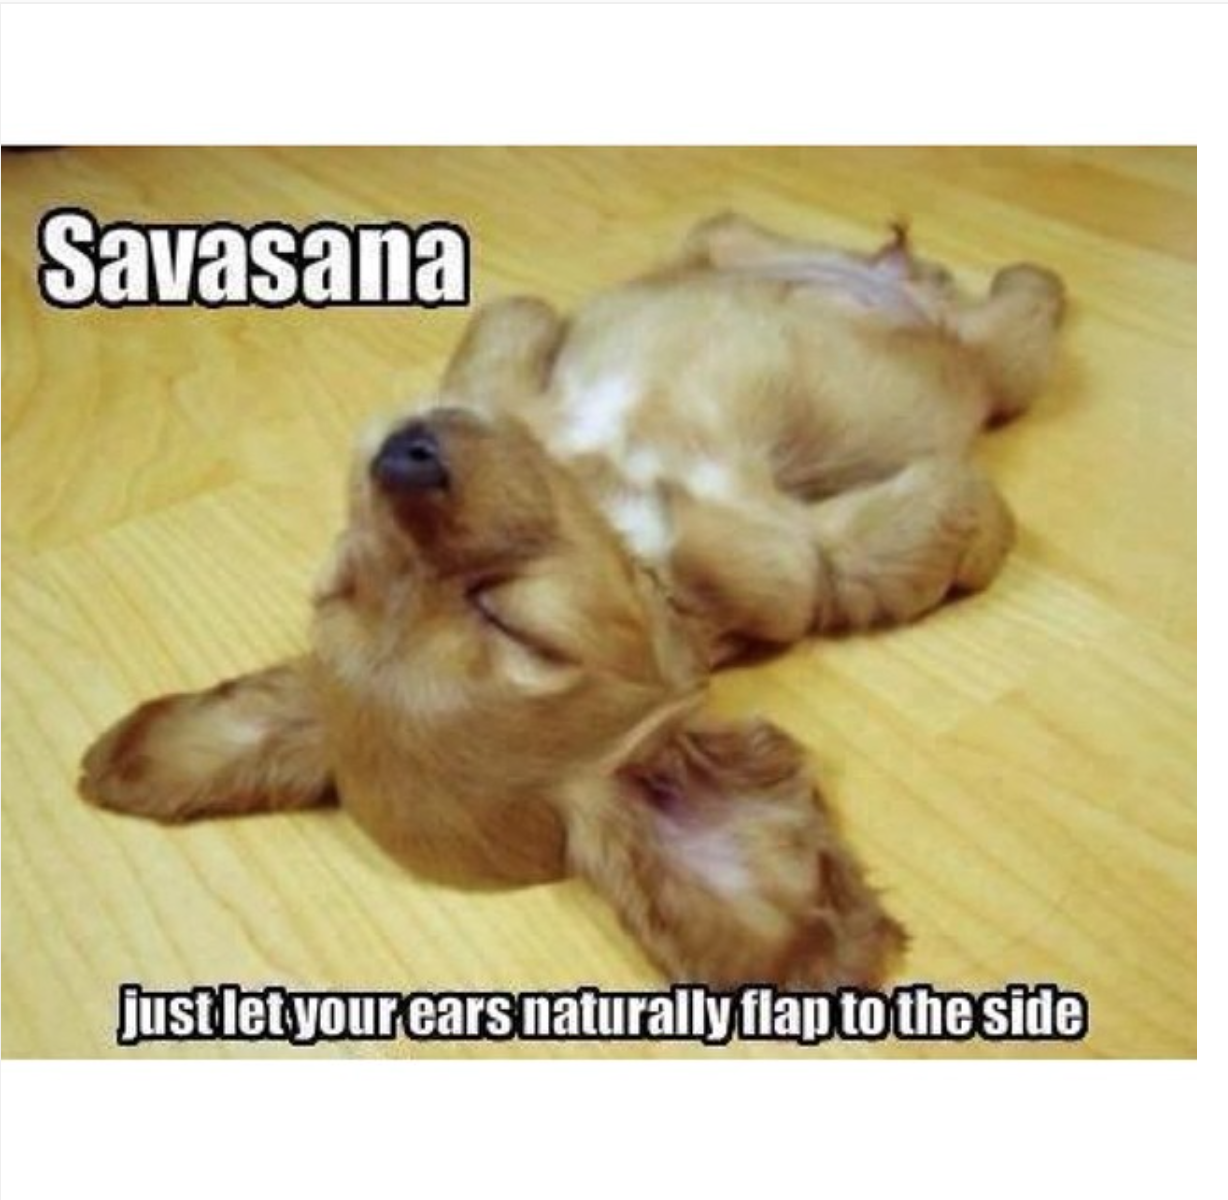 Yoga Inspiration Quotes Funny Animals Funny Animal Pictures Cute Animals